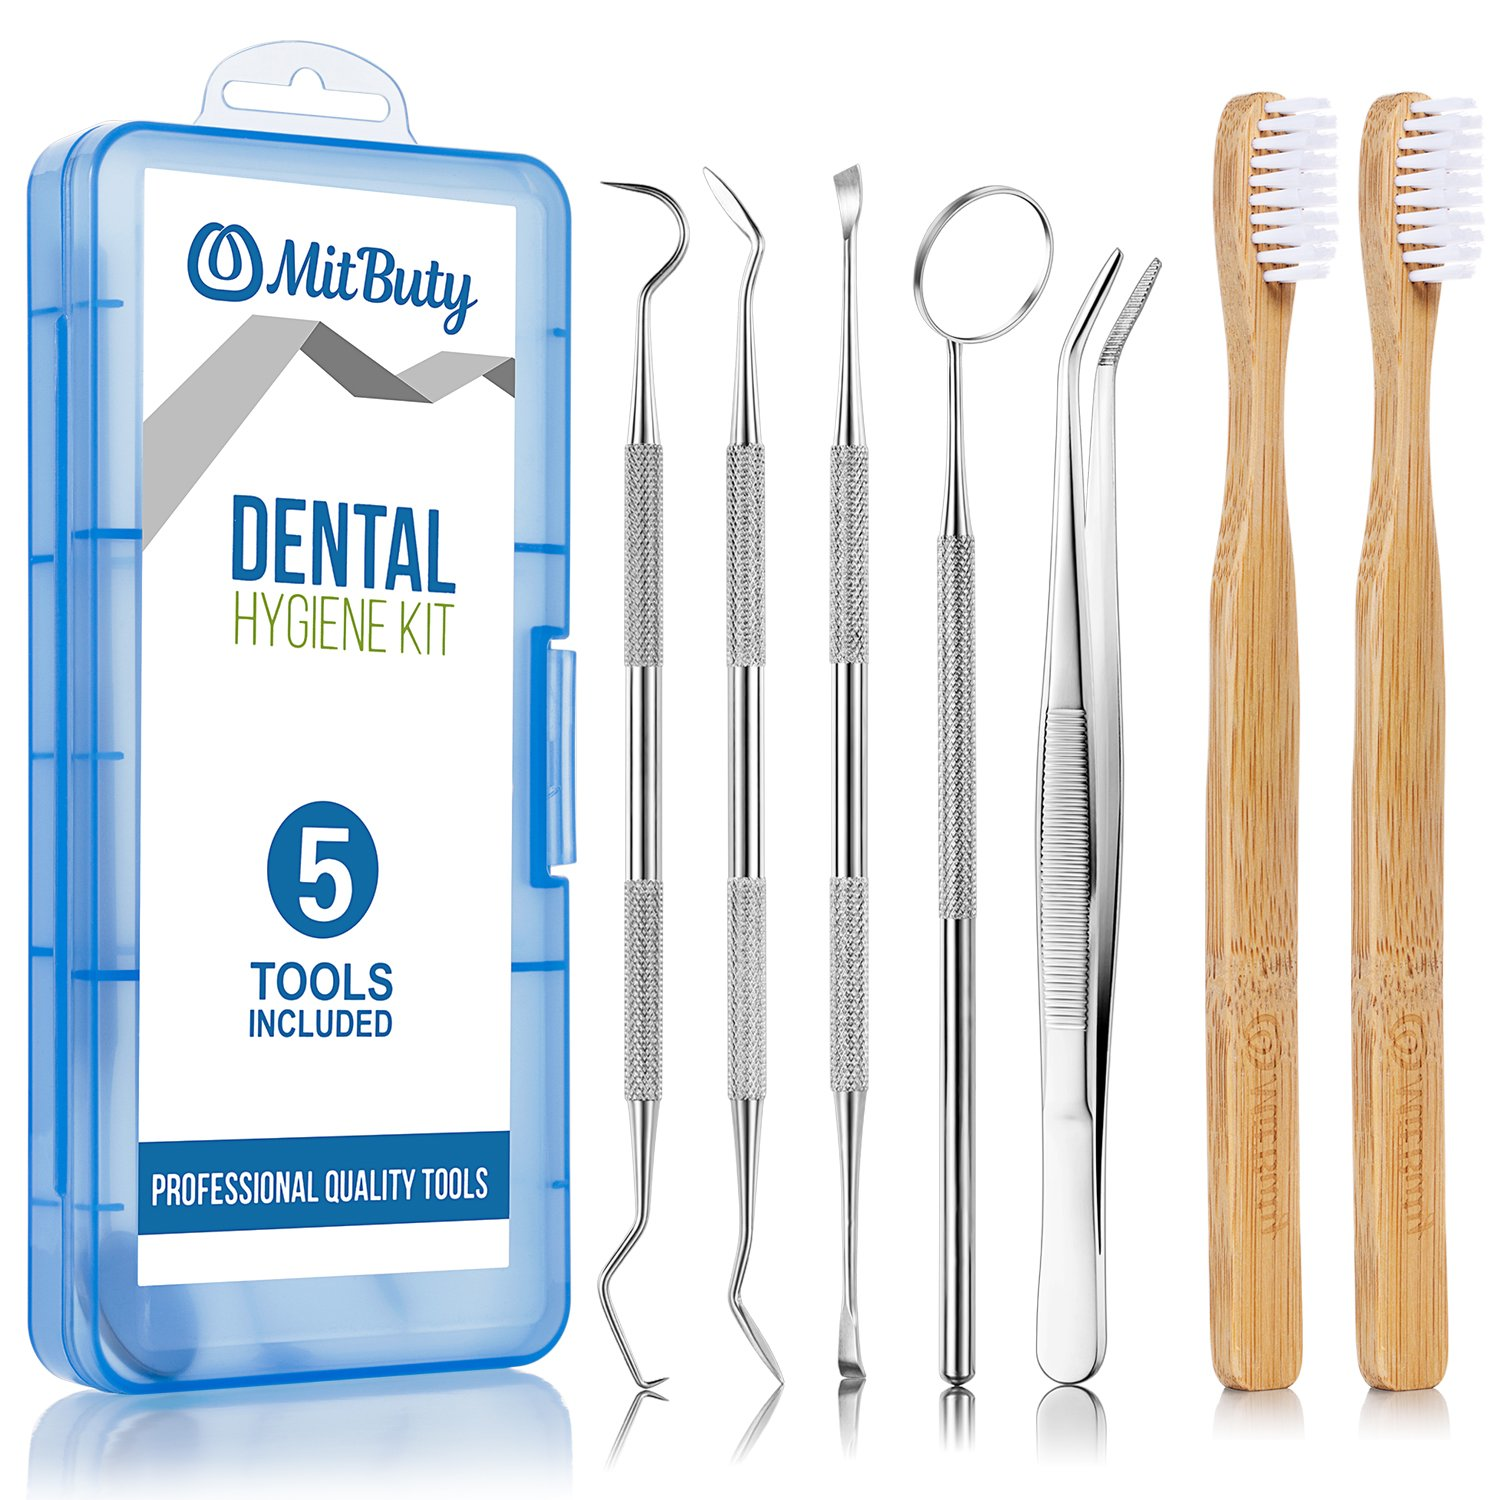 Dental Hygiene Tools Kit & 2pcs Bamboo Toothbrush – Professional Stainless Steel Dentist Instrument Set Includes Month Mirror|Dental Pick|Sickle Scaler|Tartar Remover|Tweezers – Pet-Friendly